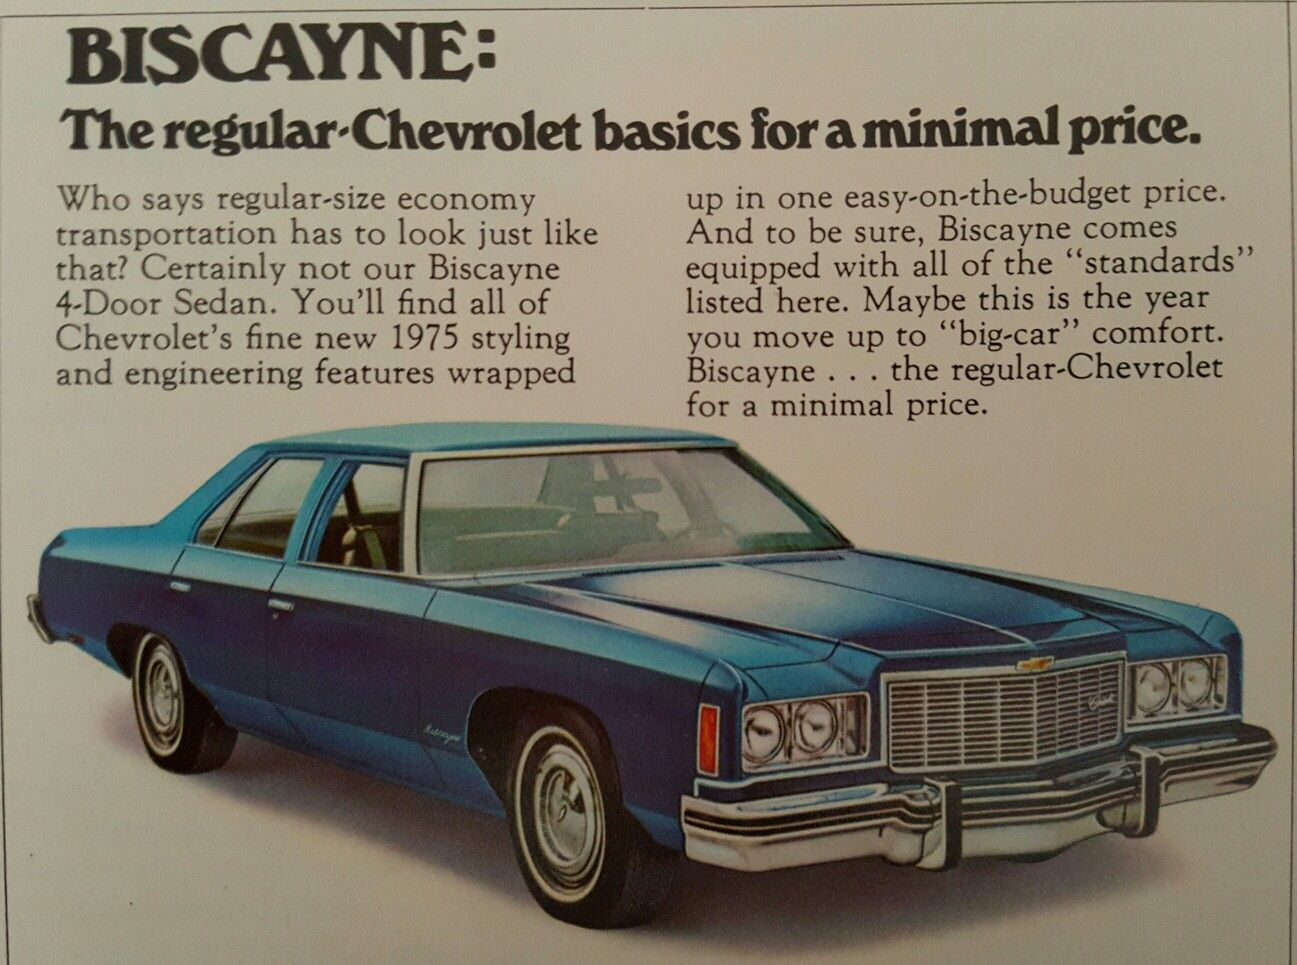 1975 Chevrolet Biscayne   Car Ads   Pinterest   Chevrolet  Cars and     1975 Chevrolet Biscayne